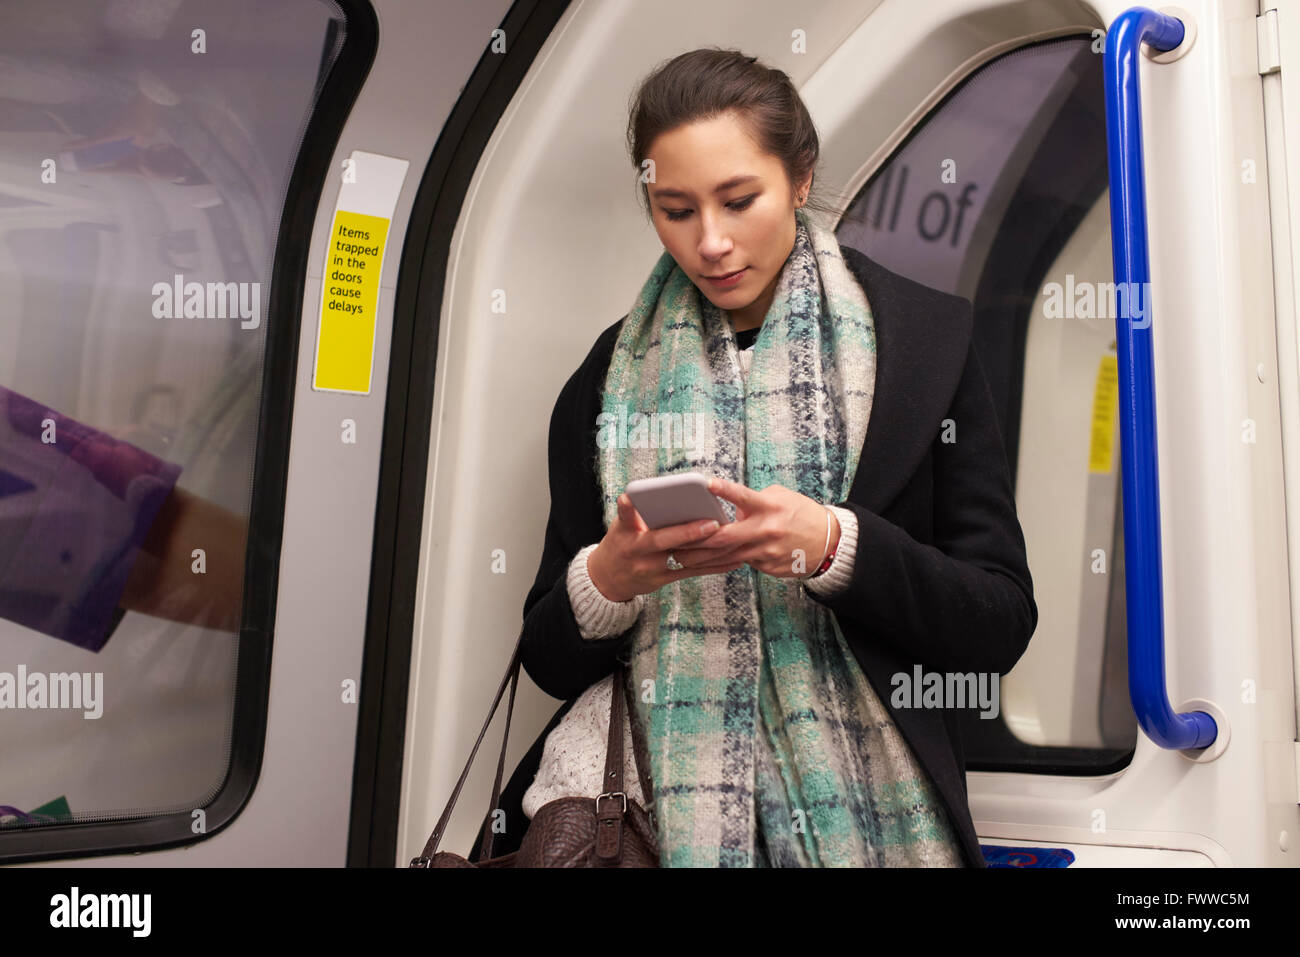 Woman Standing In Metro Carriage Looking At Text Message - Stock Image